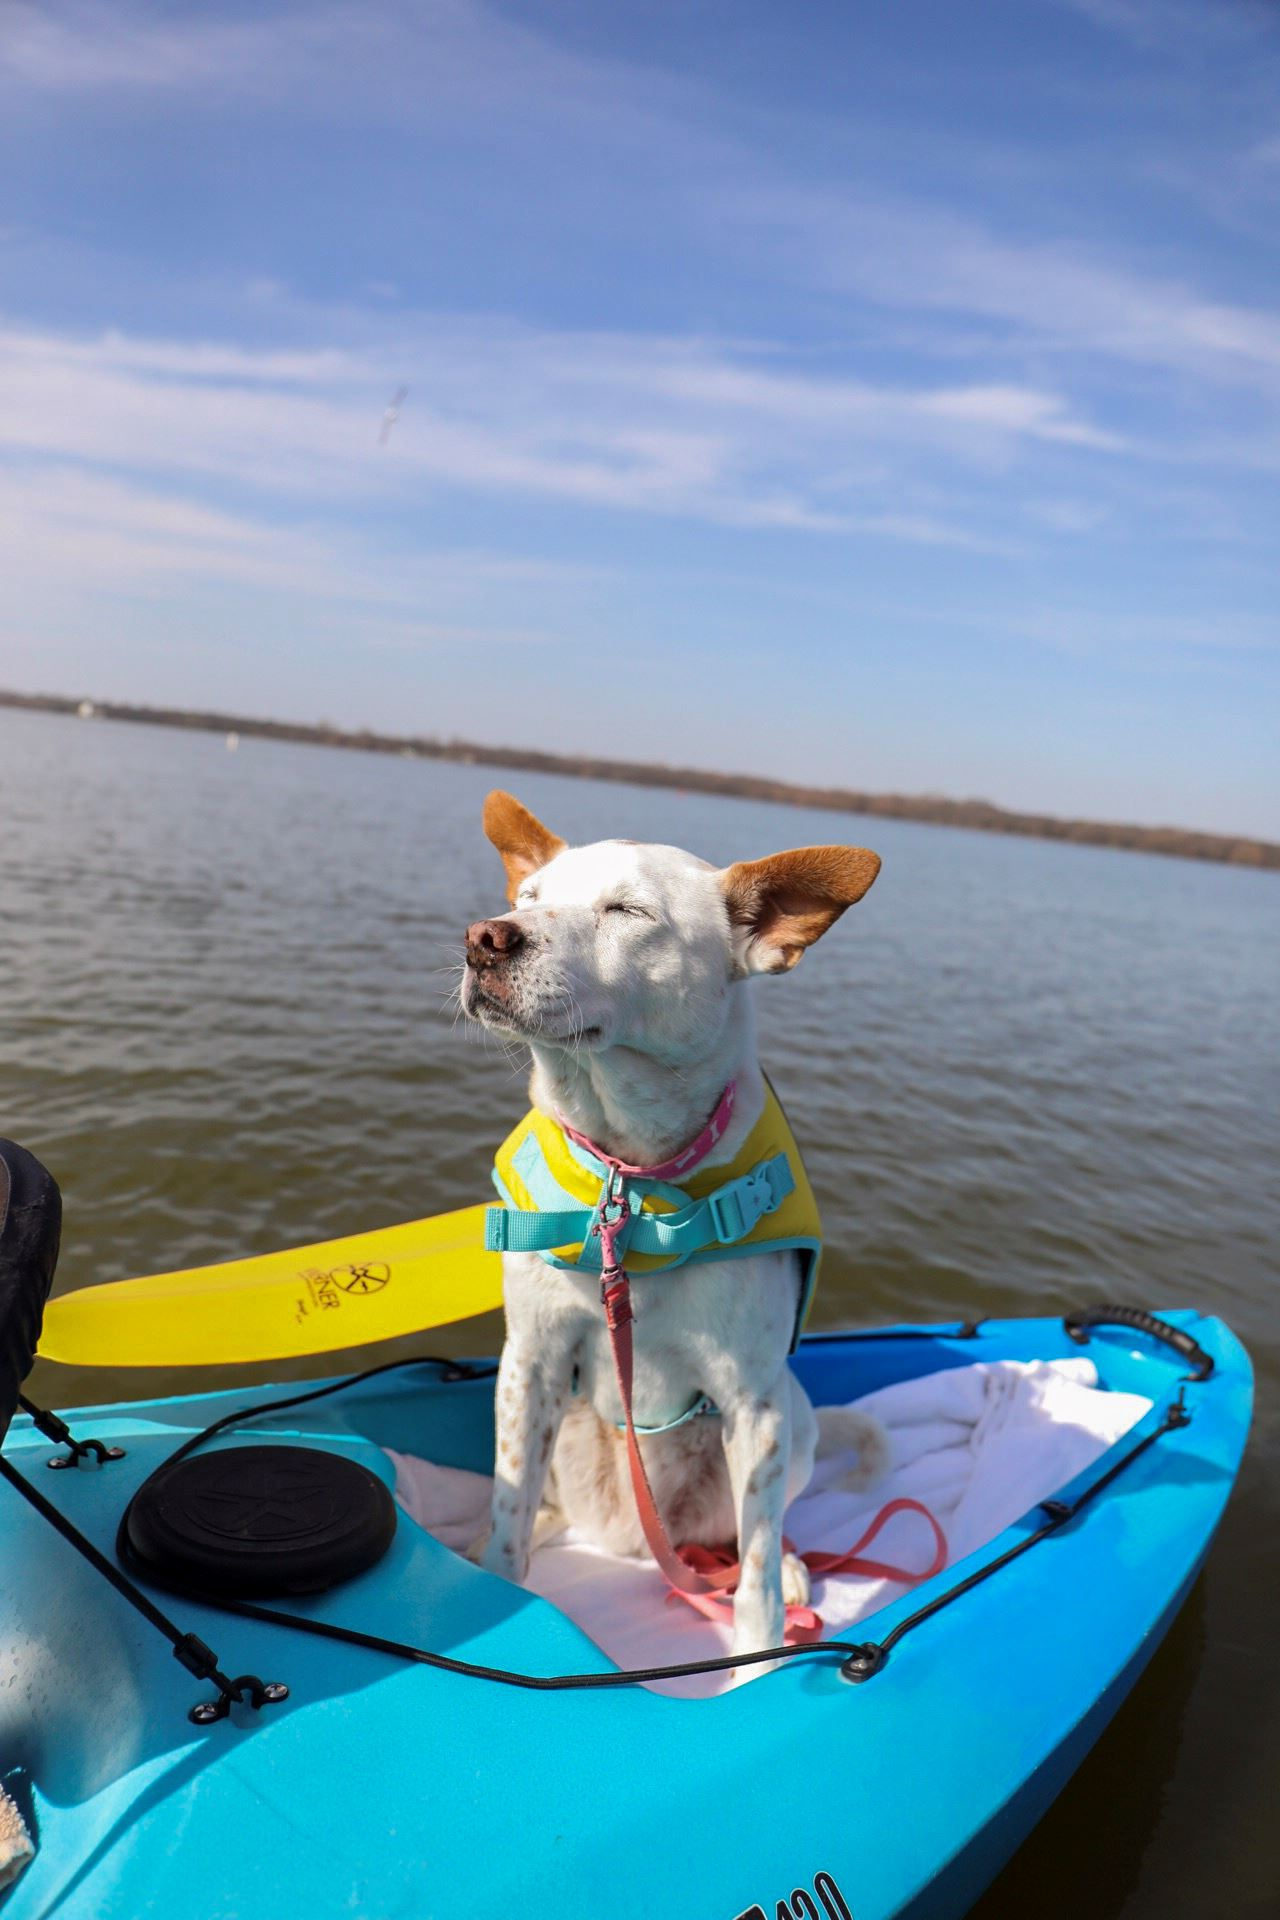 Puppy riding in a kayak on the water